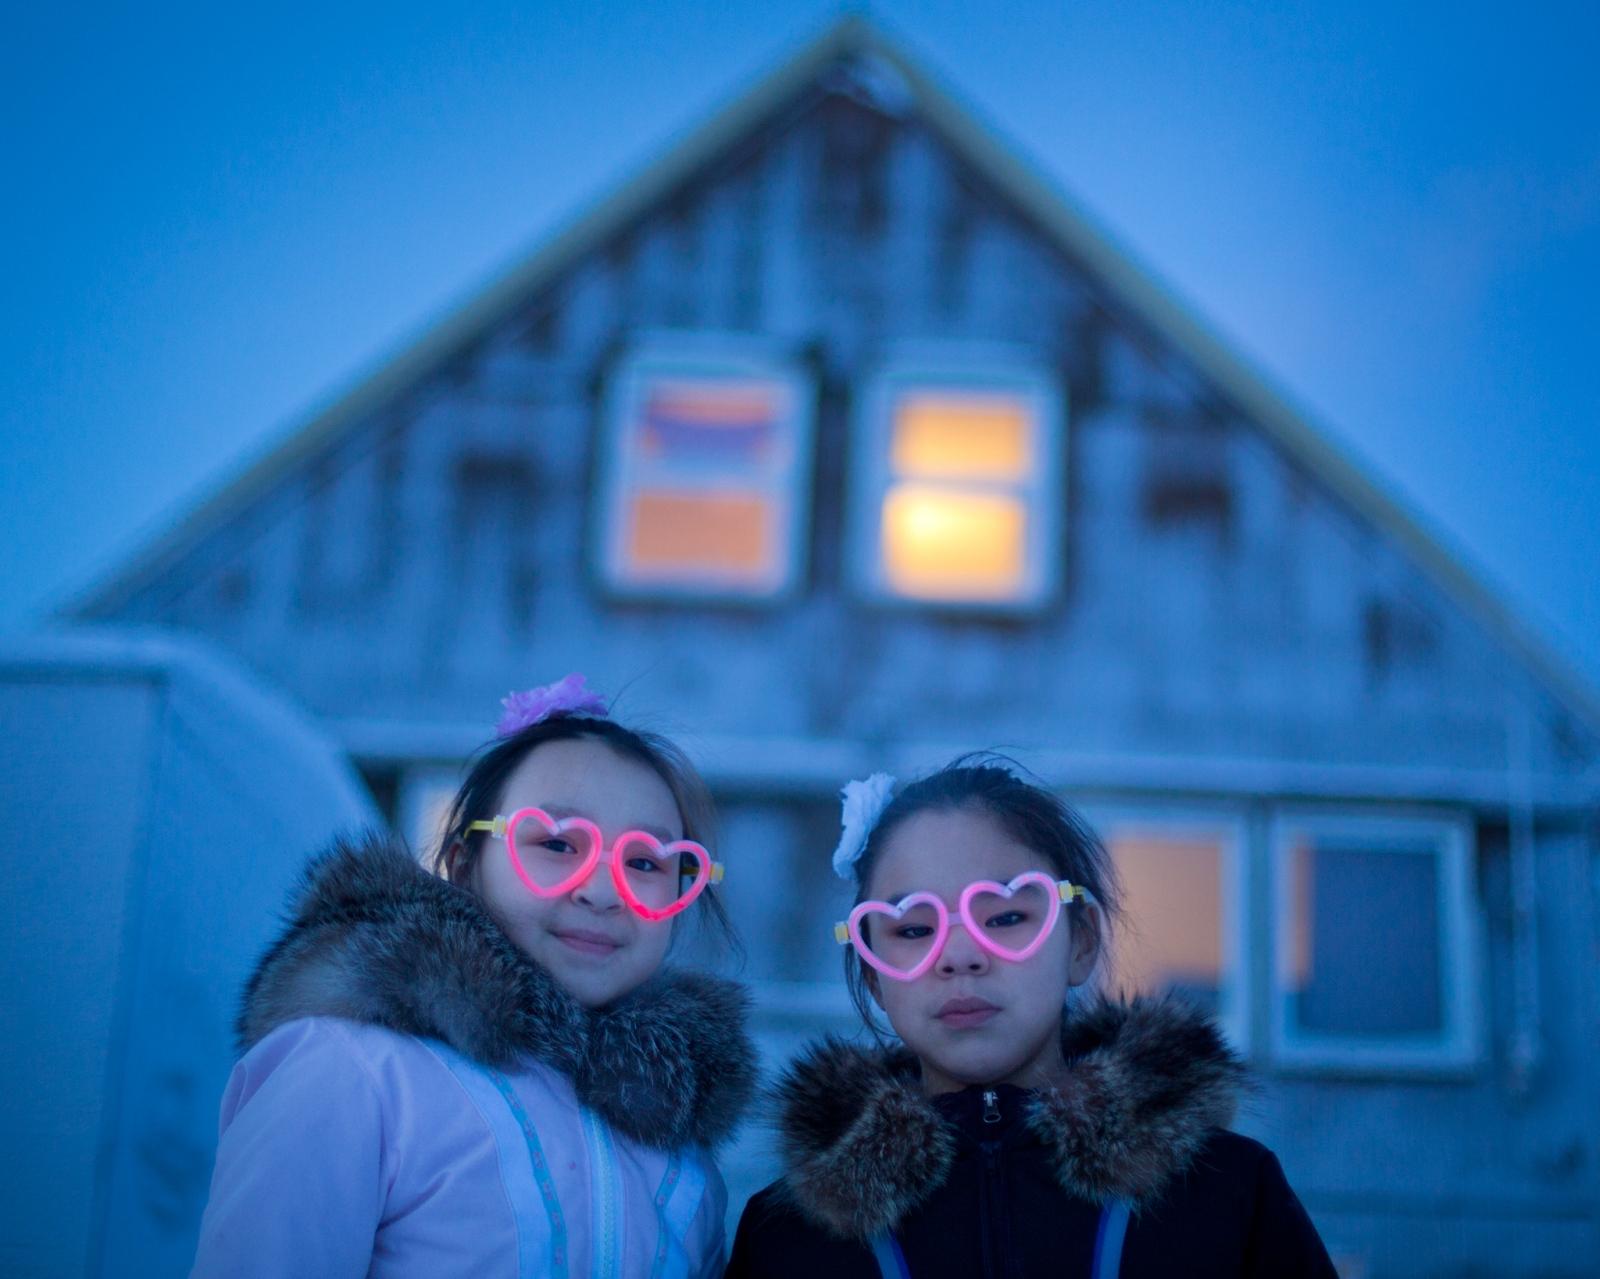 Joy and Amelia, 10, don heart-shaped glasses for Arctic Bay's weekly Friday Night Dance. Through a long and dark winter, frequent community events such as dances, sports games, sewing clubs, and church services make for plenty of social opportunities all winter long.